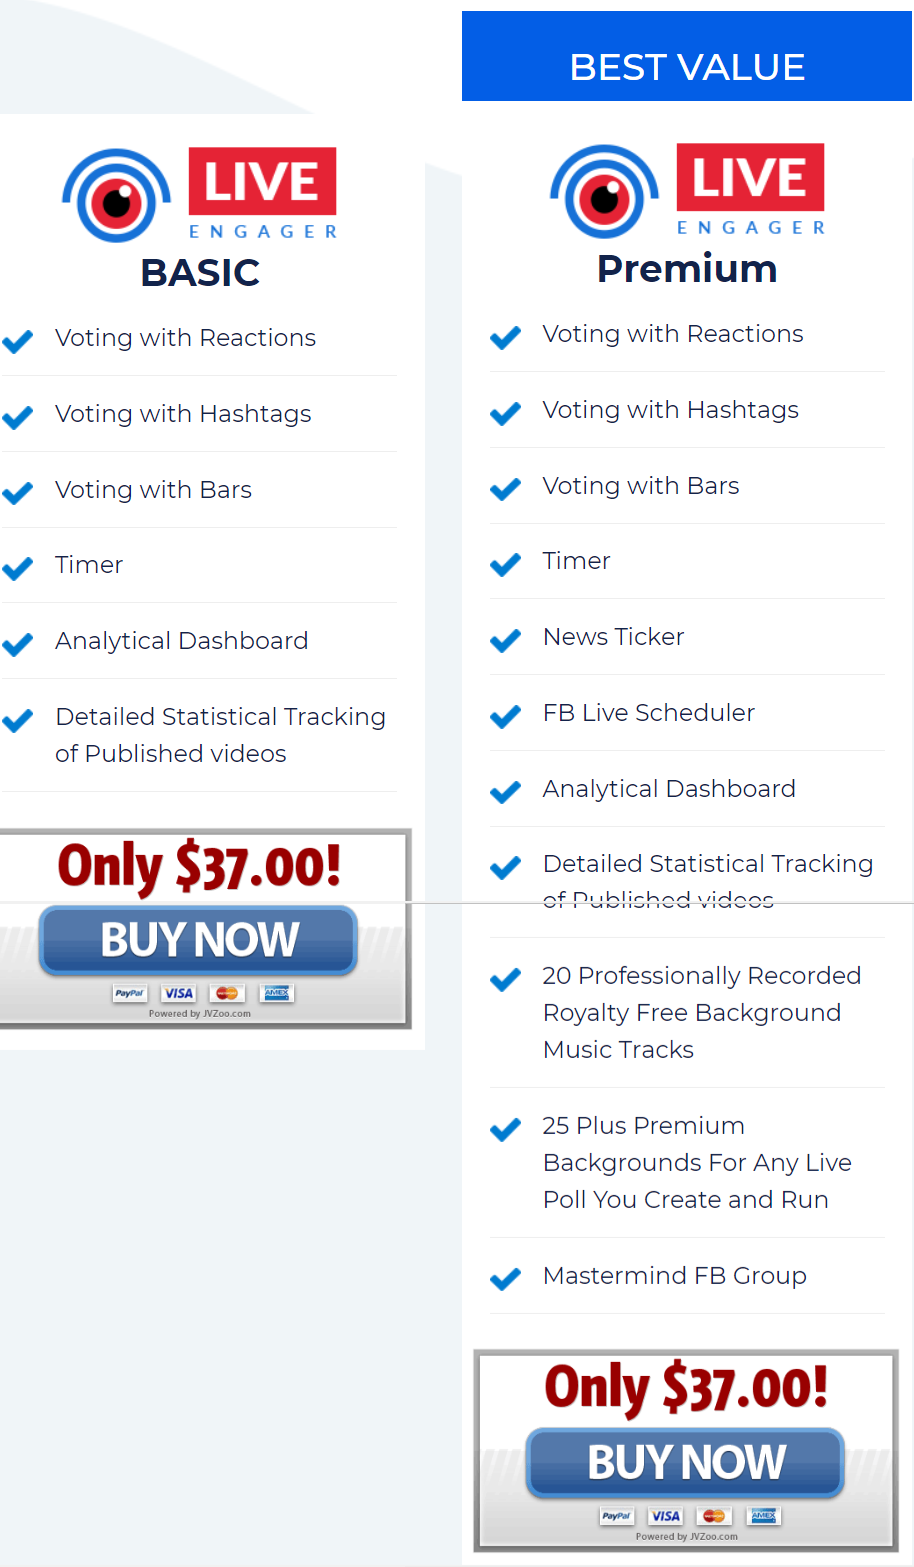 live-engager-pricing